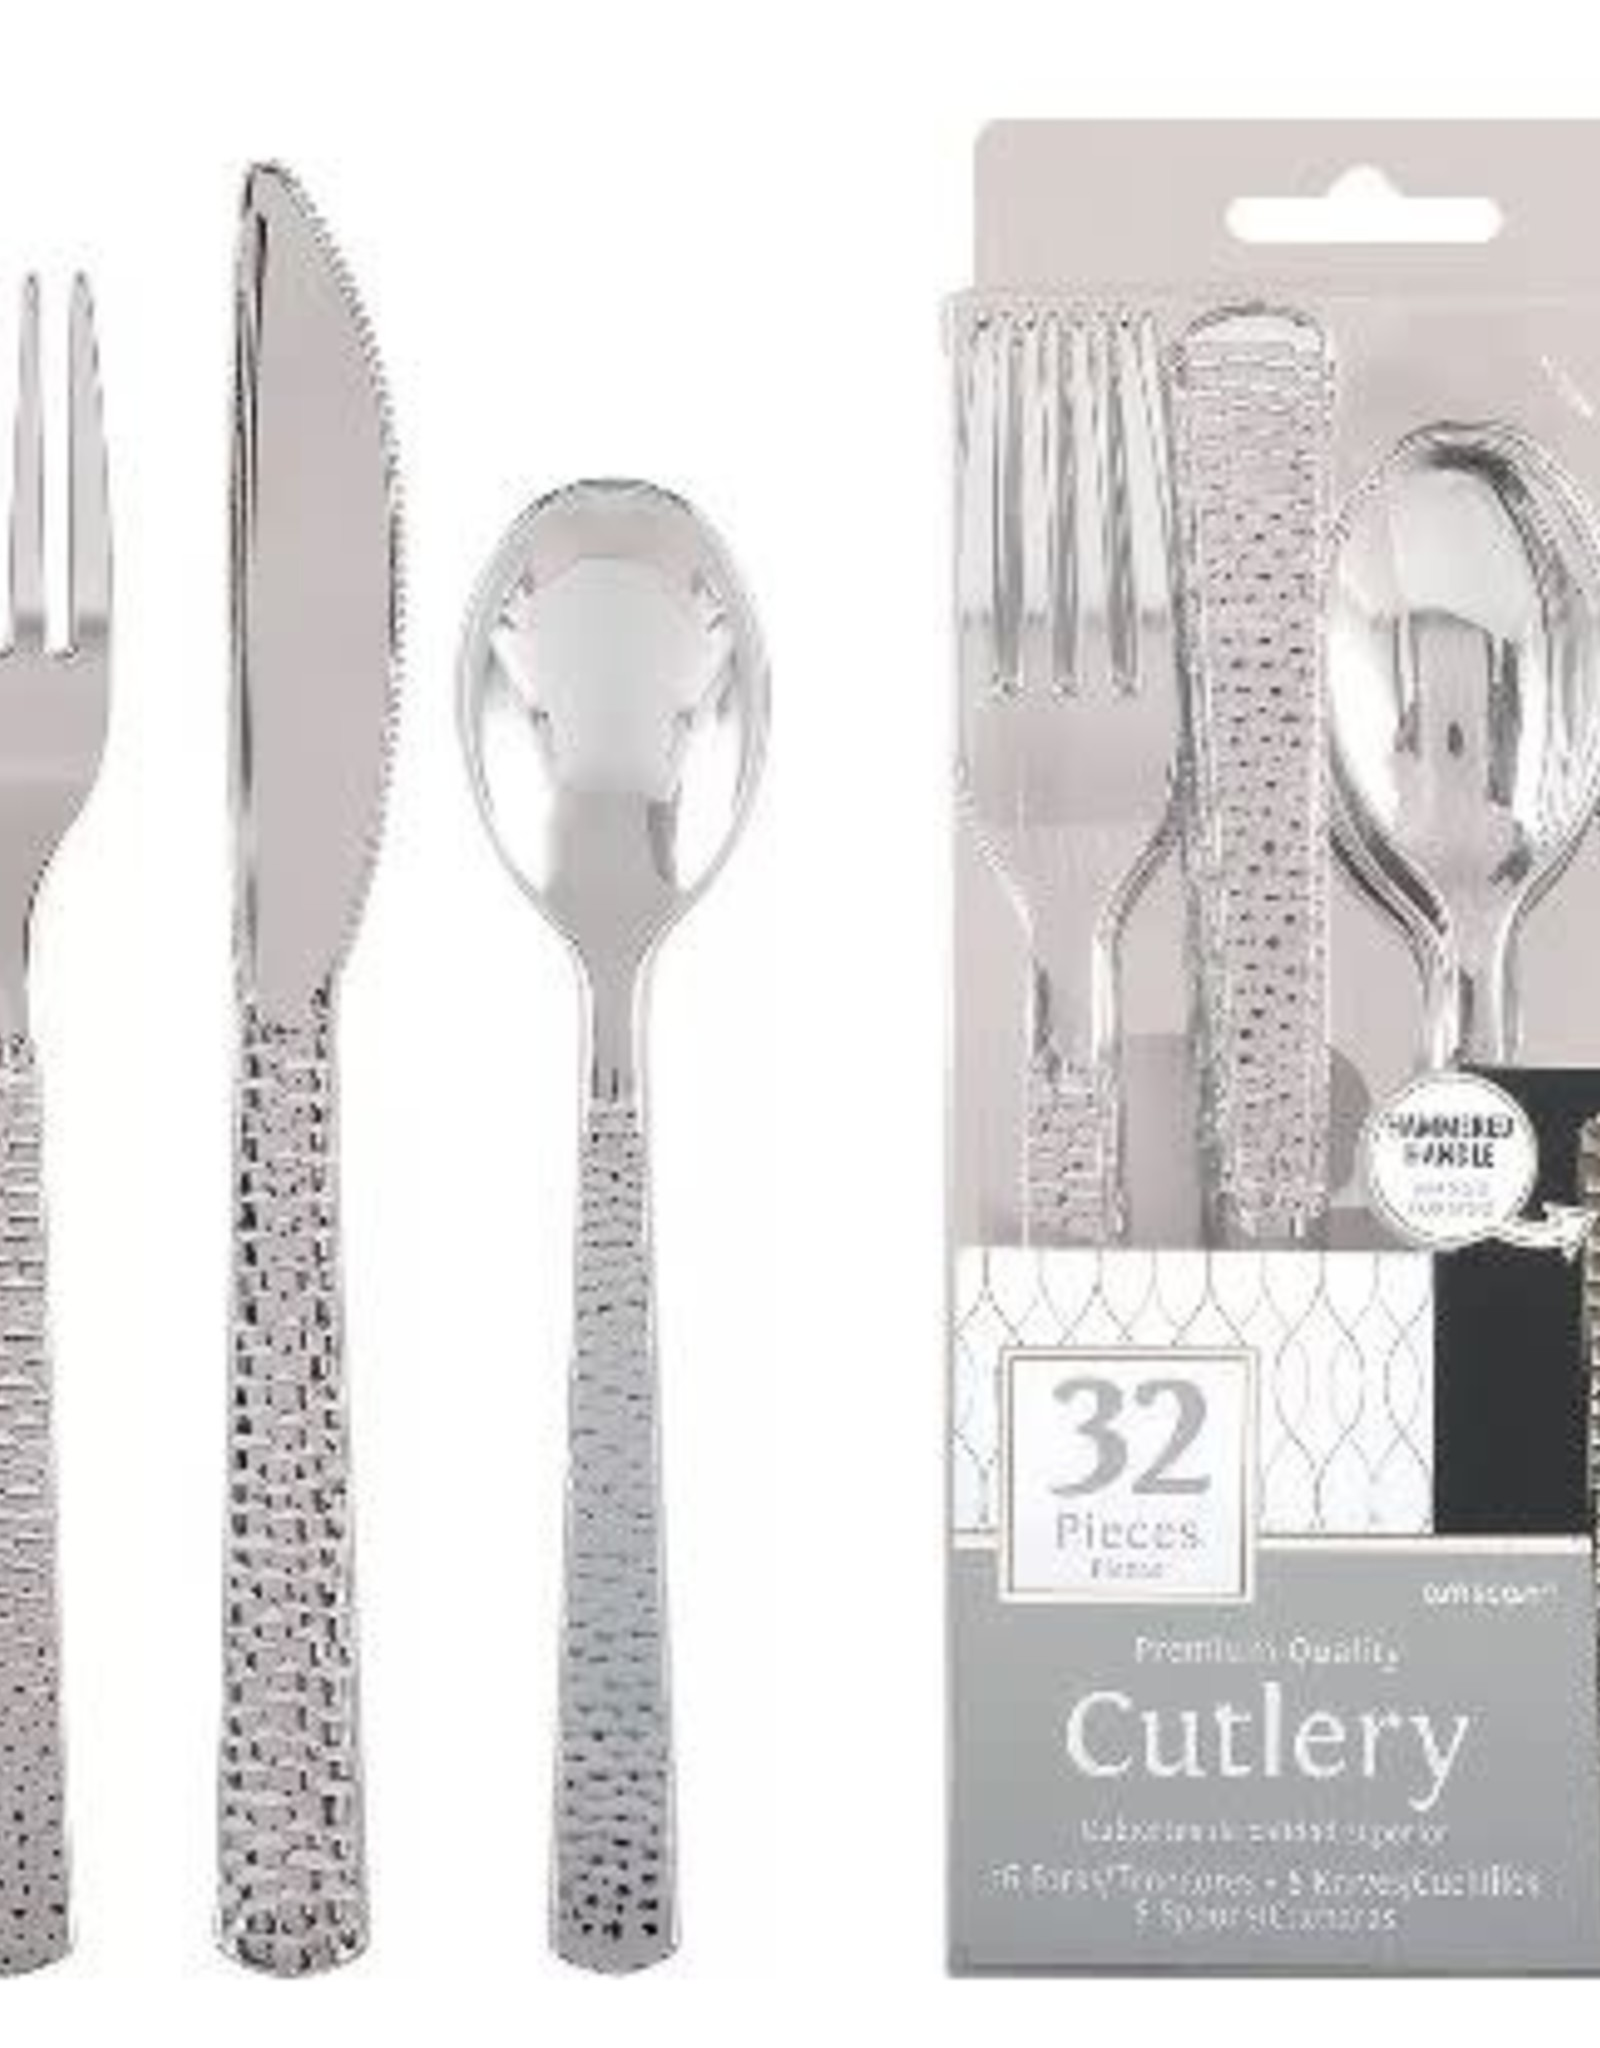 Premium Quality Cutlery Silver 32 pieces